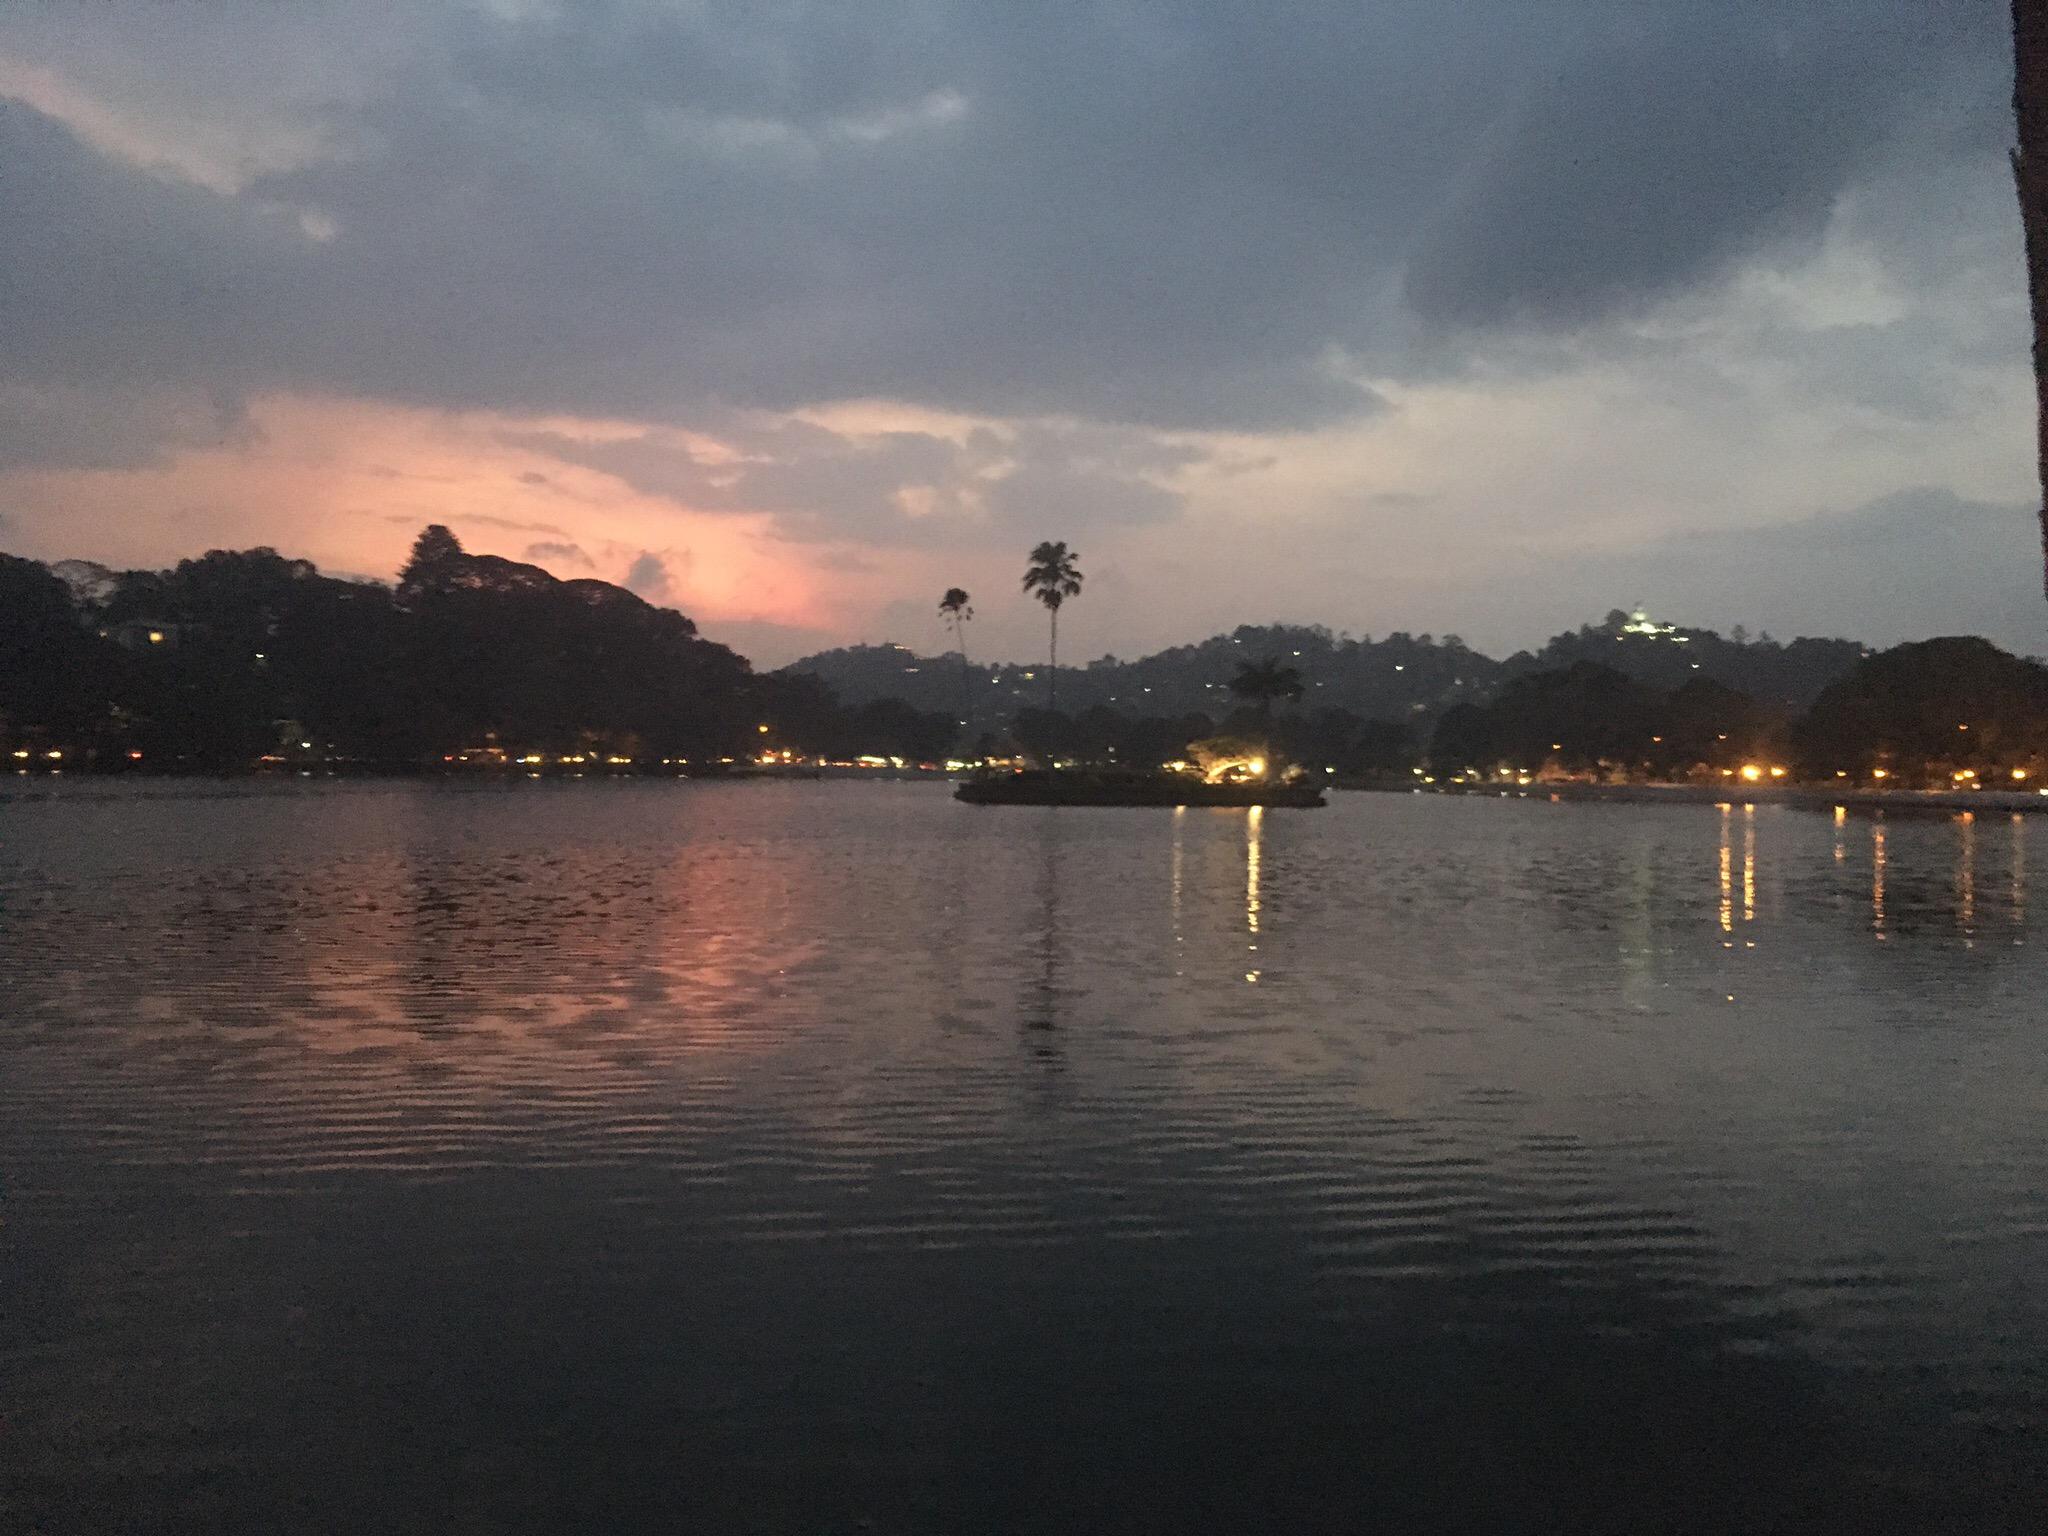 Lake in Kandy at sunset, Sri Lanka